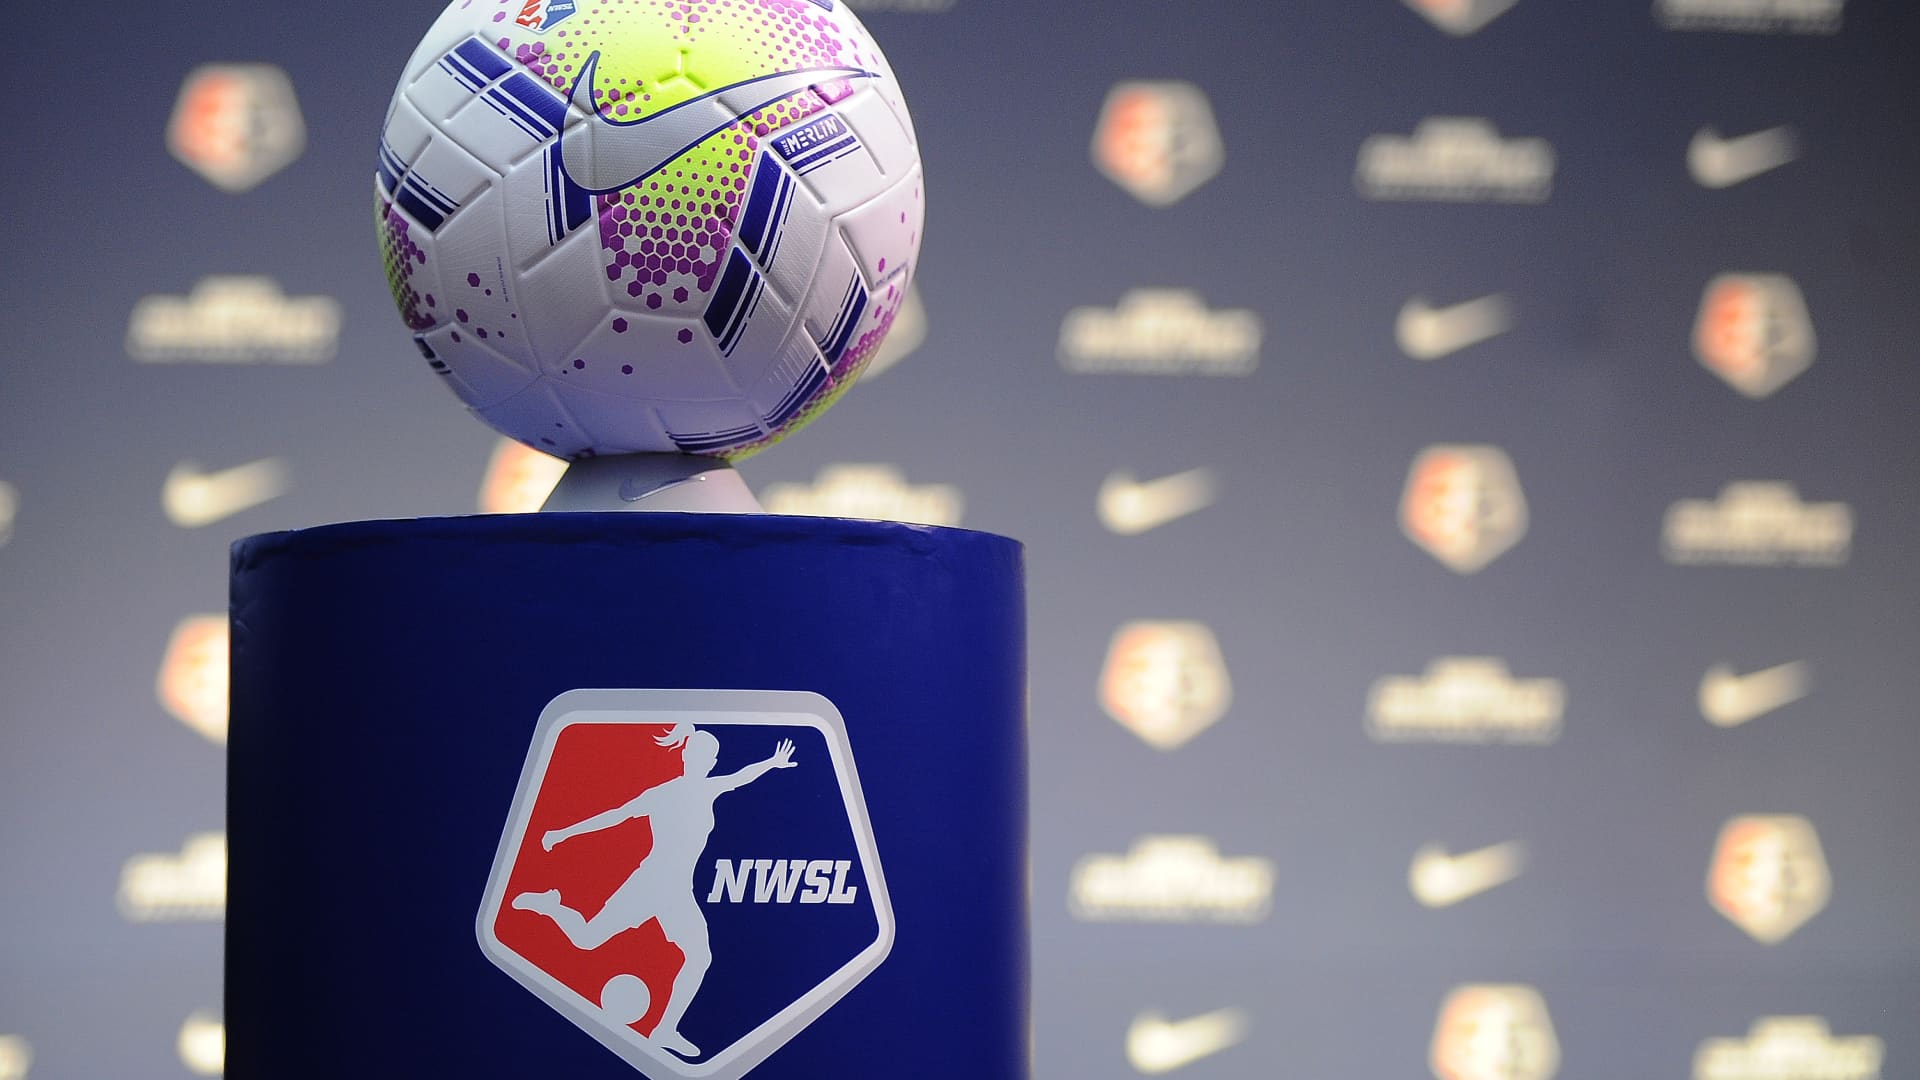 NWSL game ball during the 2020 NWSL College Draft at the Baltimore Convention Center on January 16, 2020 in Baltimore, Maryland.